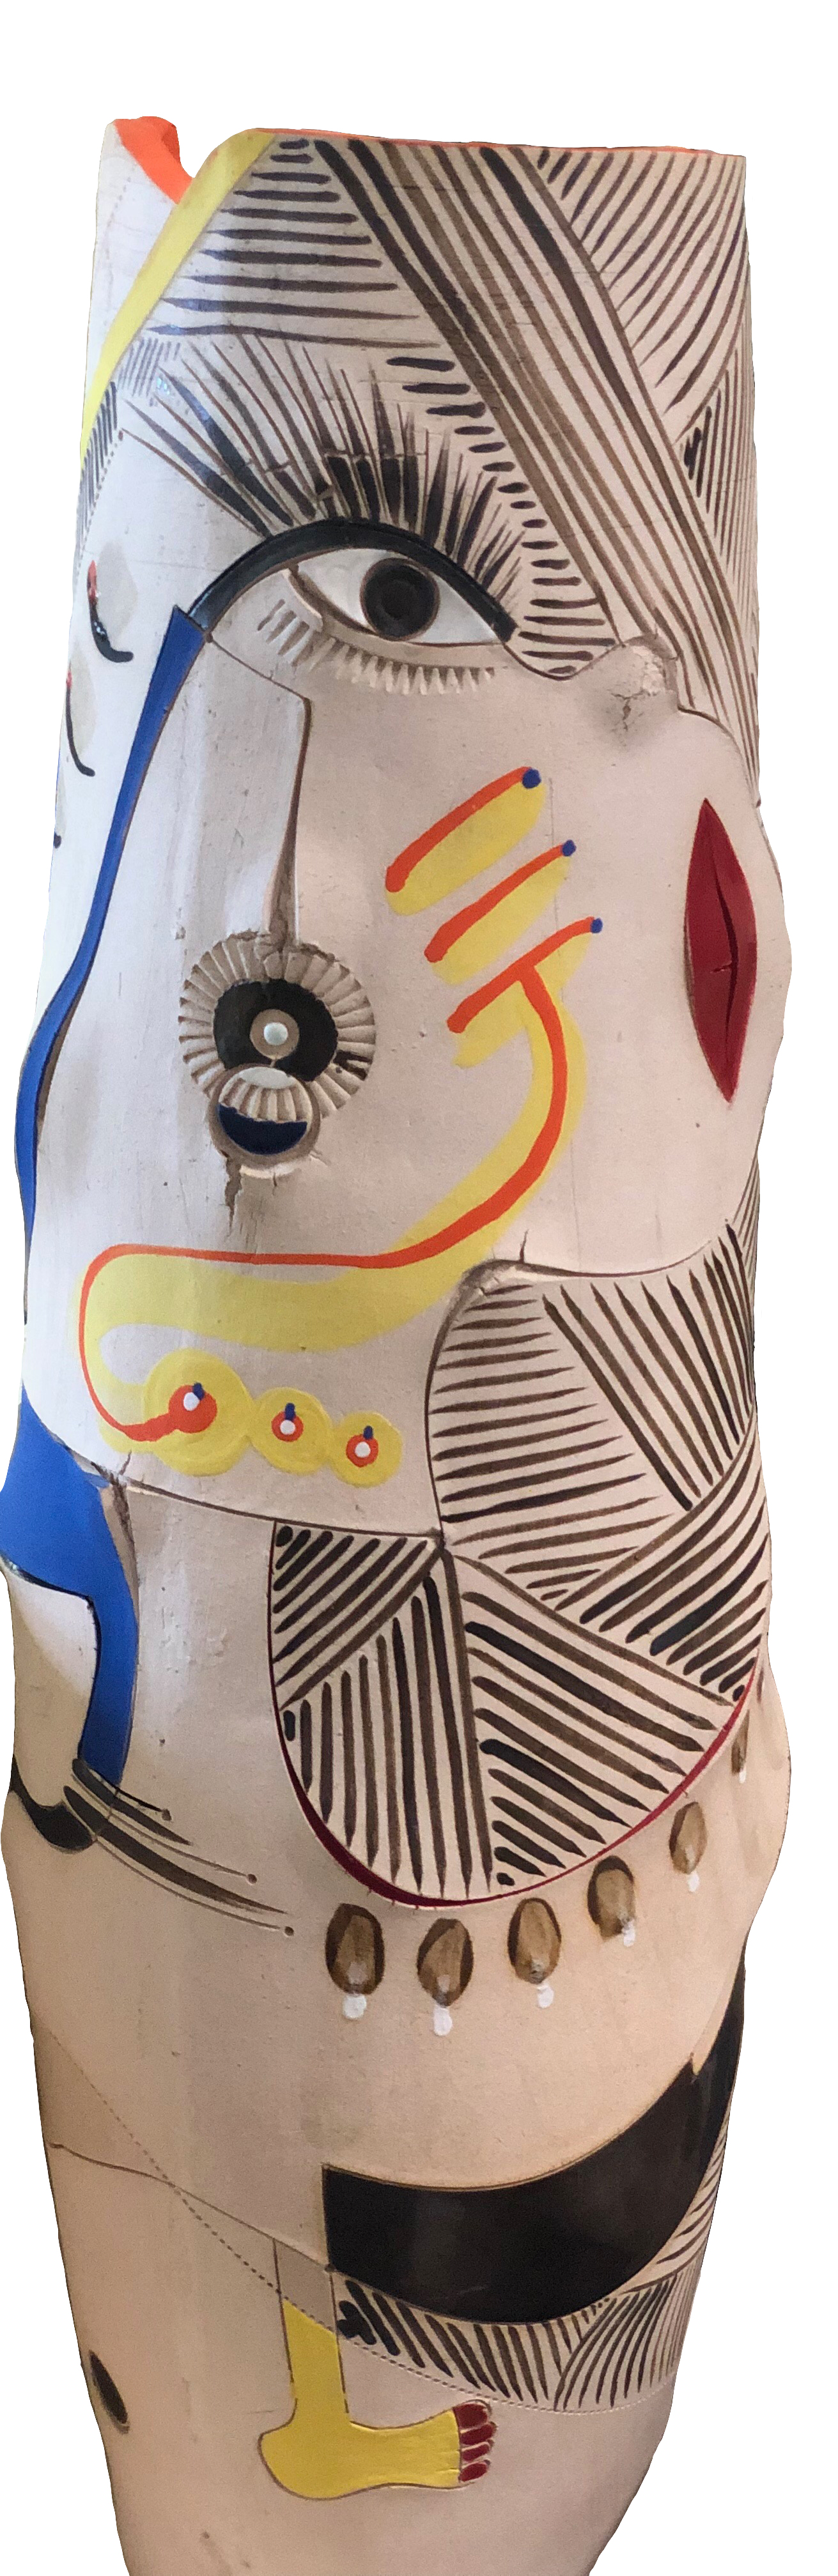 """Africasso"" Vase by Andile Dyalvane for Imiso Ceramics"